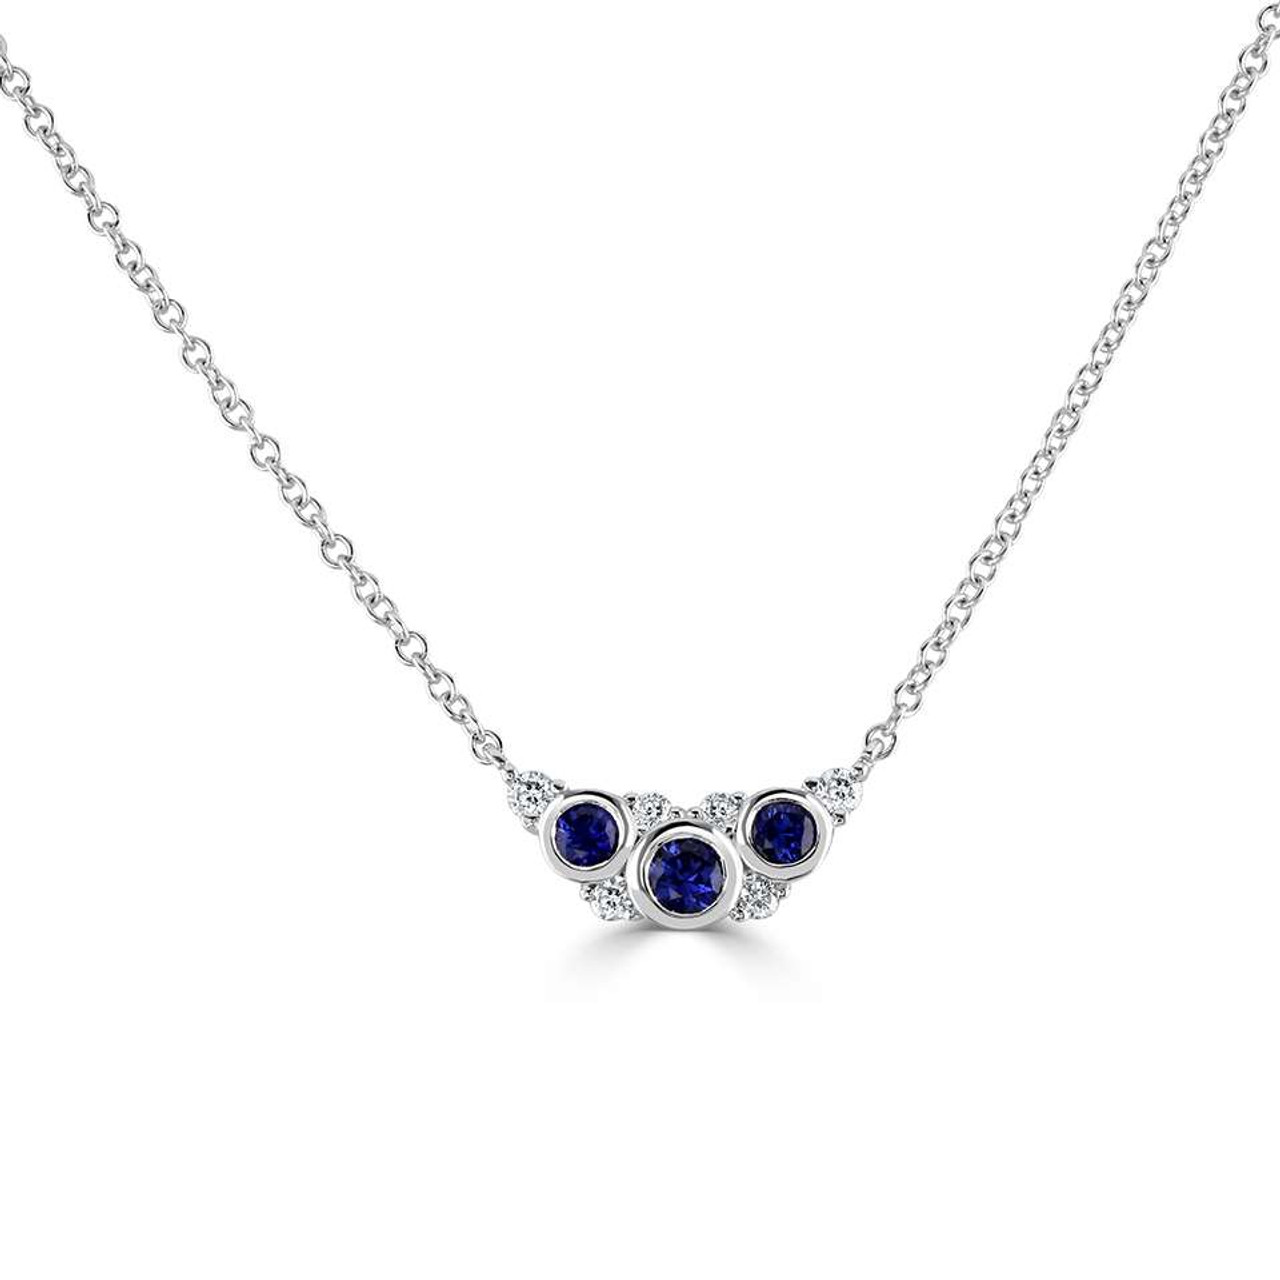 18ct White Gold Diamond & Sapphire Bouquet Necklace